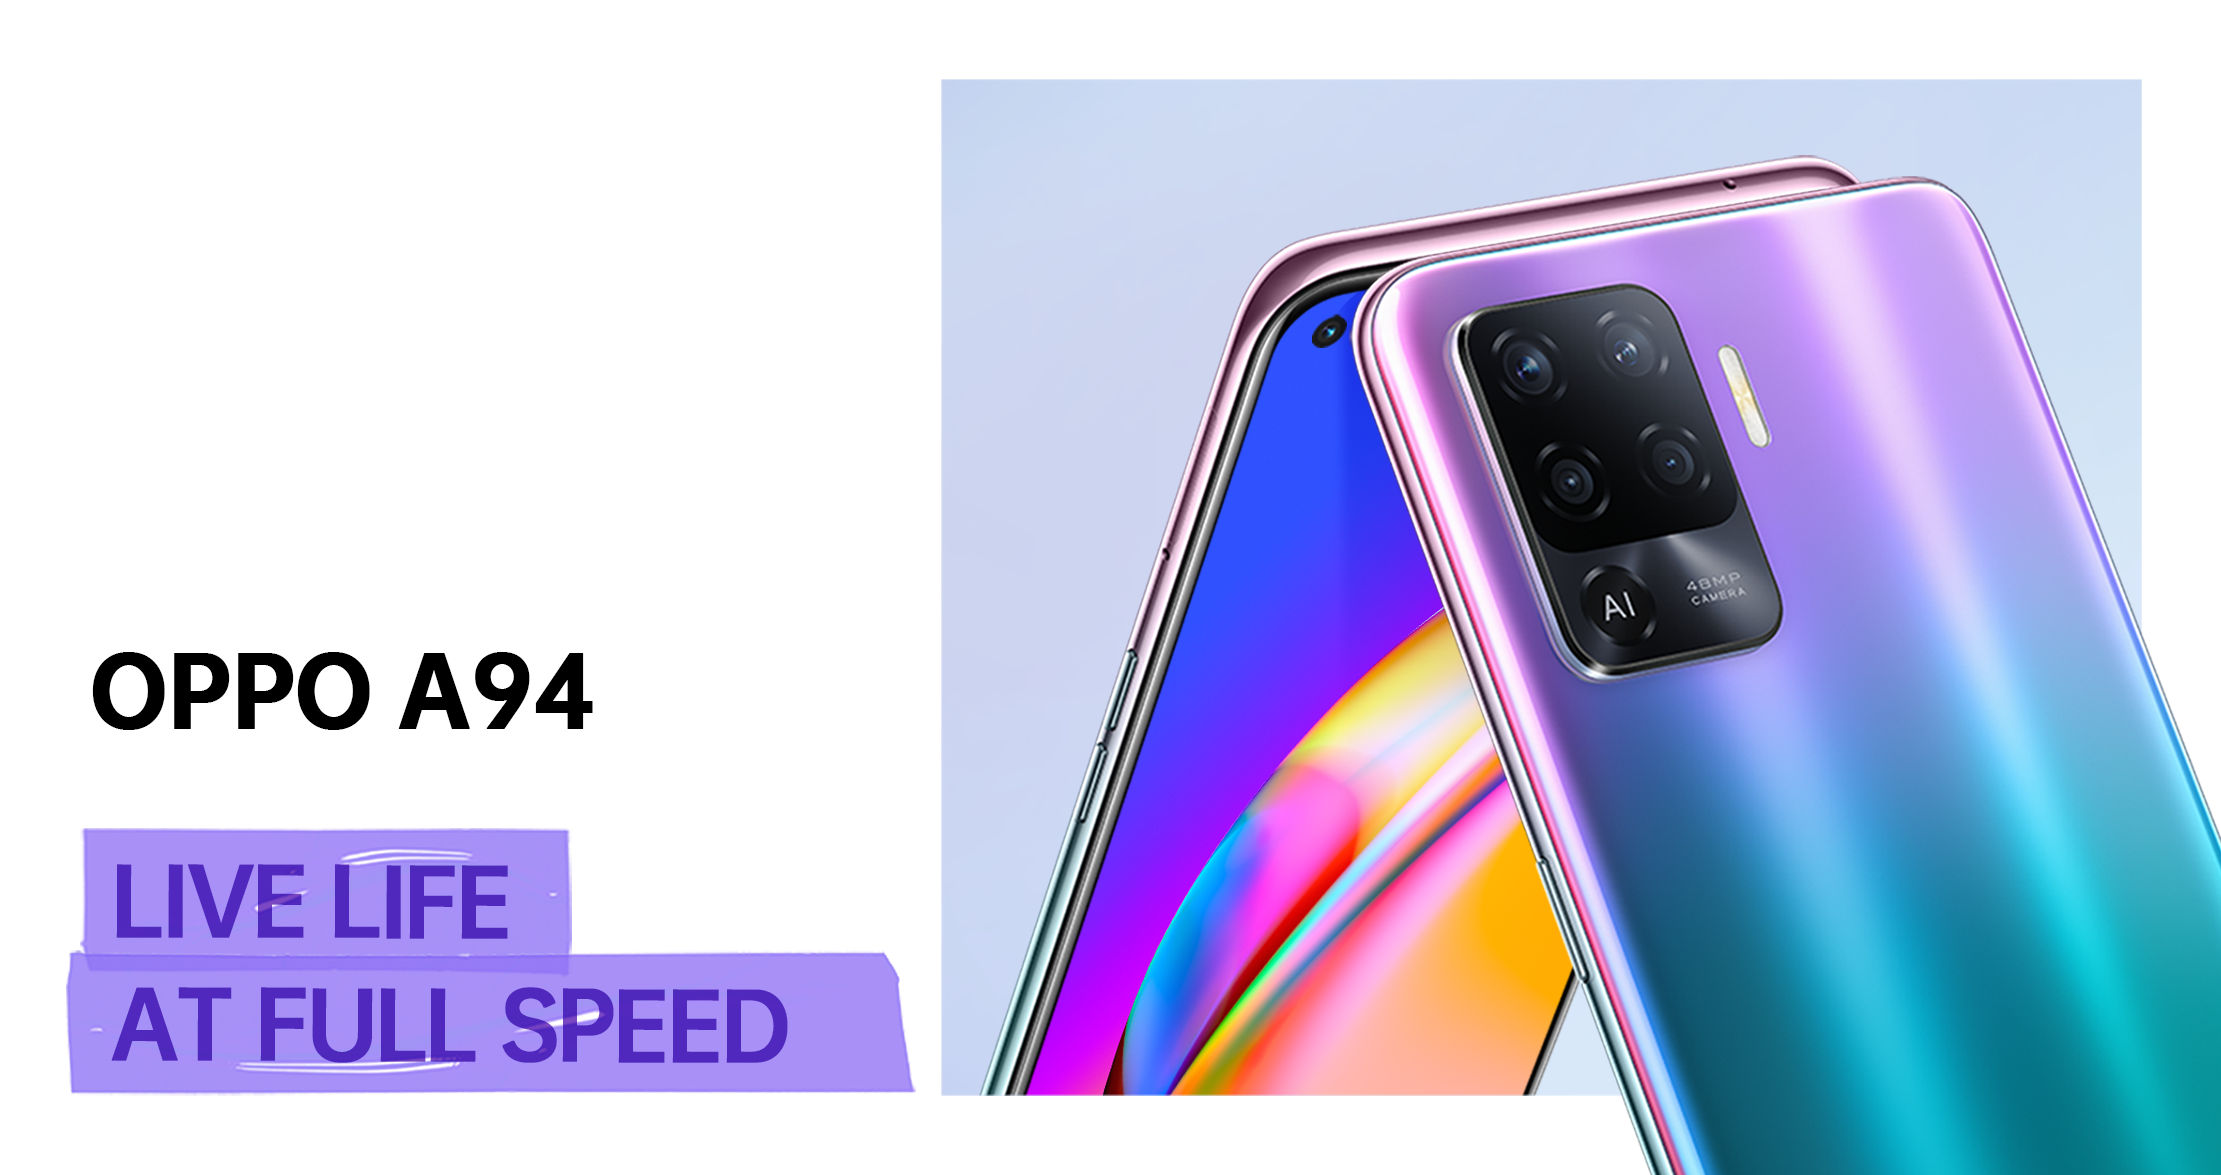 OPPO A94 Live Life At Full Speed